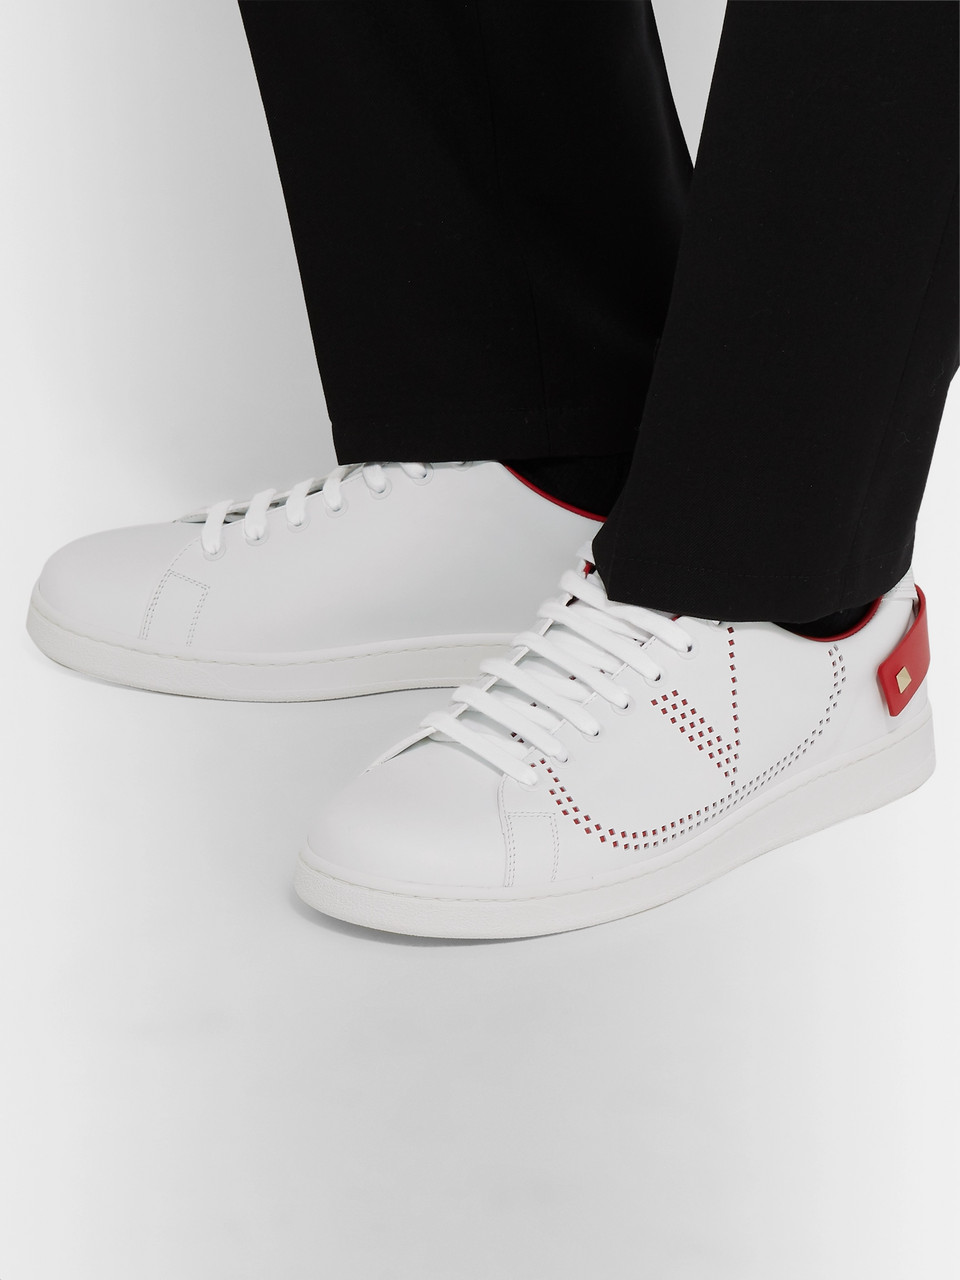 Valentino Valentino Garavani Net Perforated Leather Sneakers